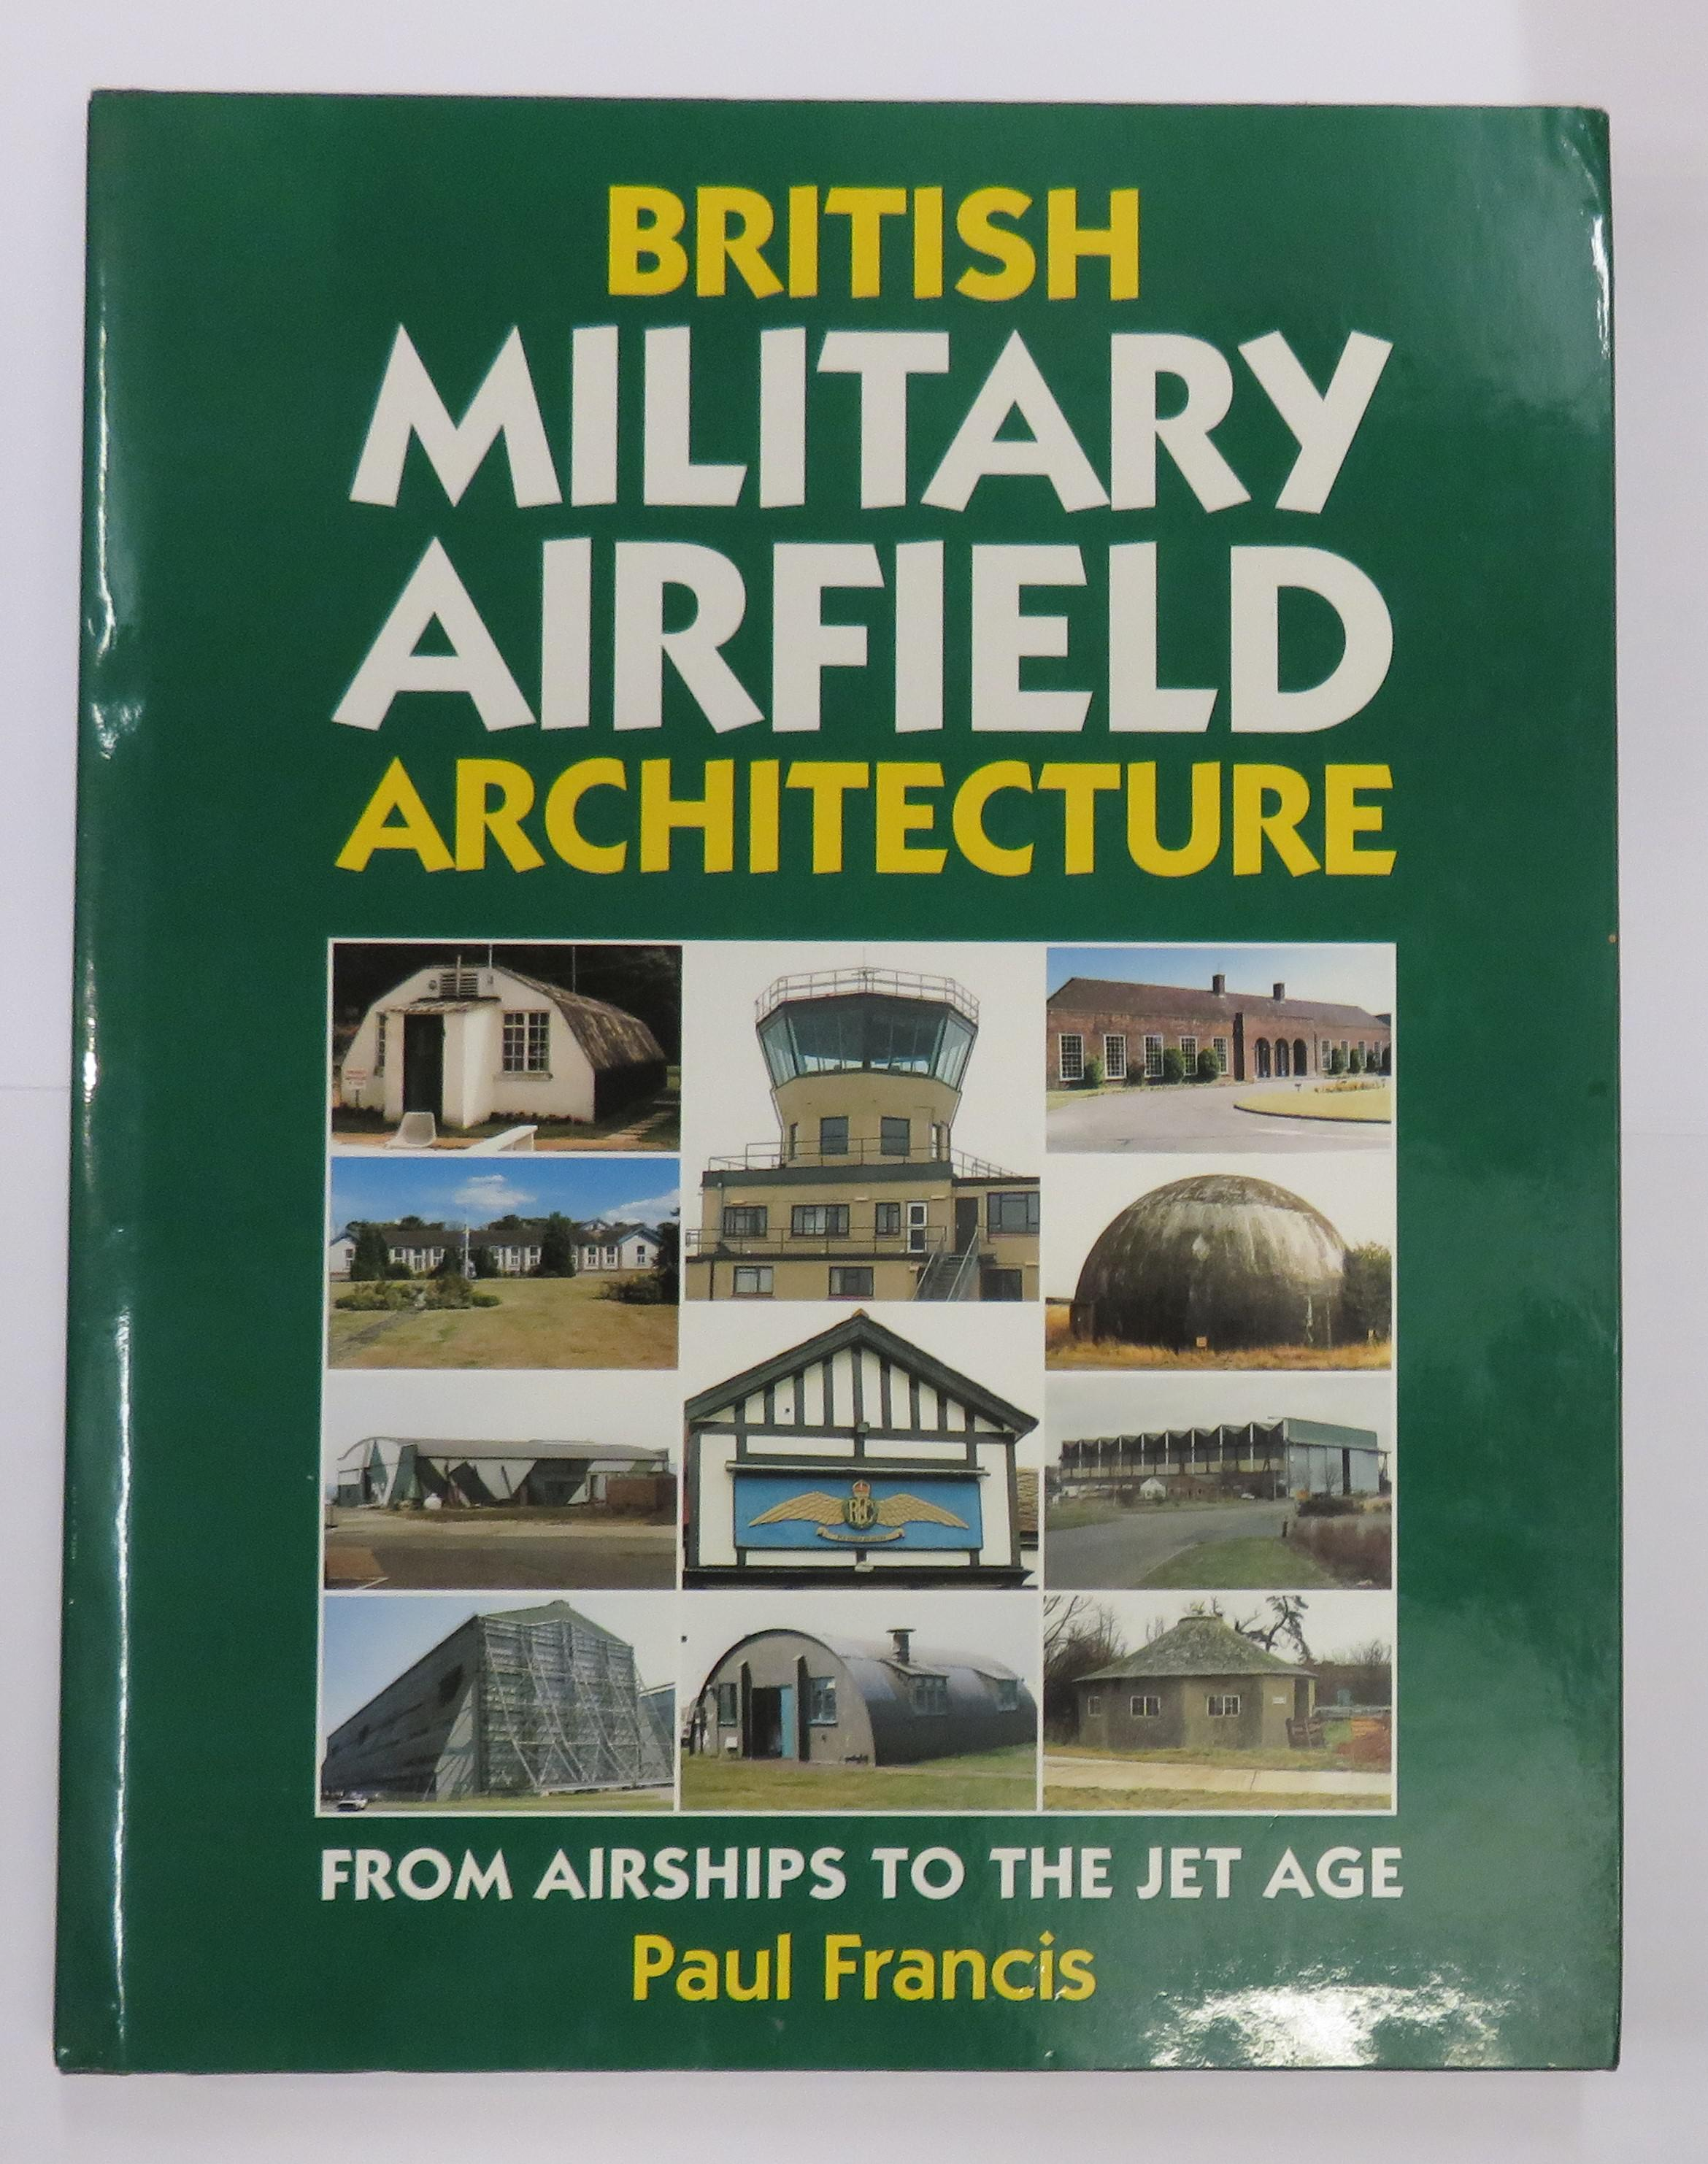 British Military Airfield Architecture From Airships To The Jet Age